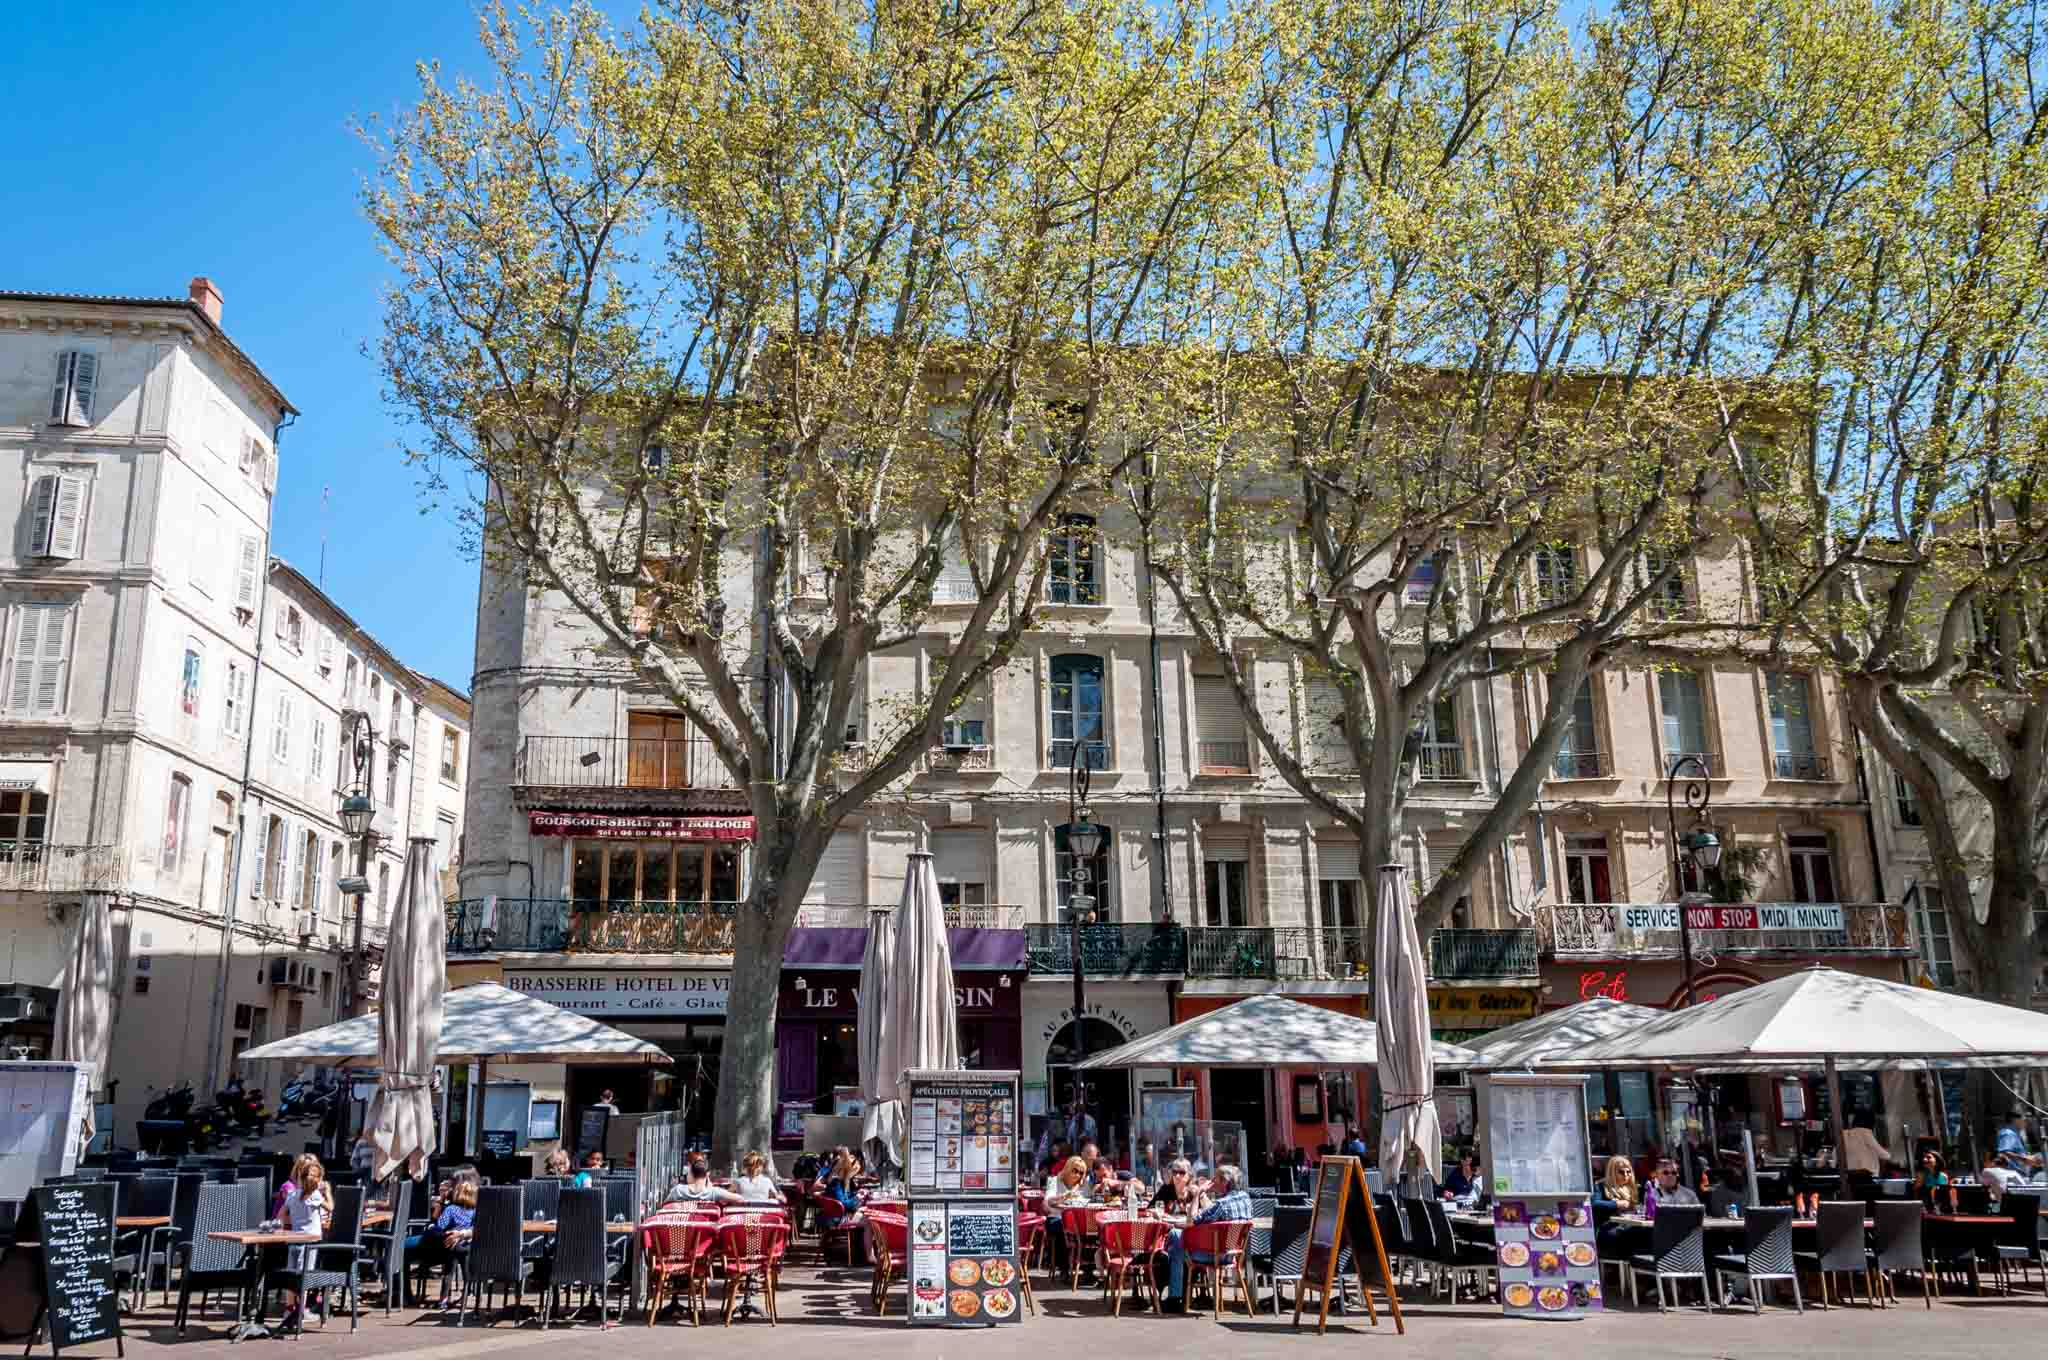 There are so many fun things to do in Provence. Spending some time in Avignon's Place de l'Horloge is a great way to enjoy an afternoon.